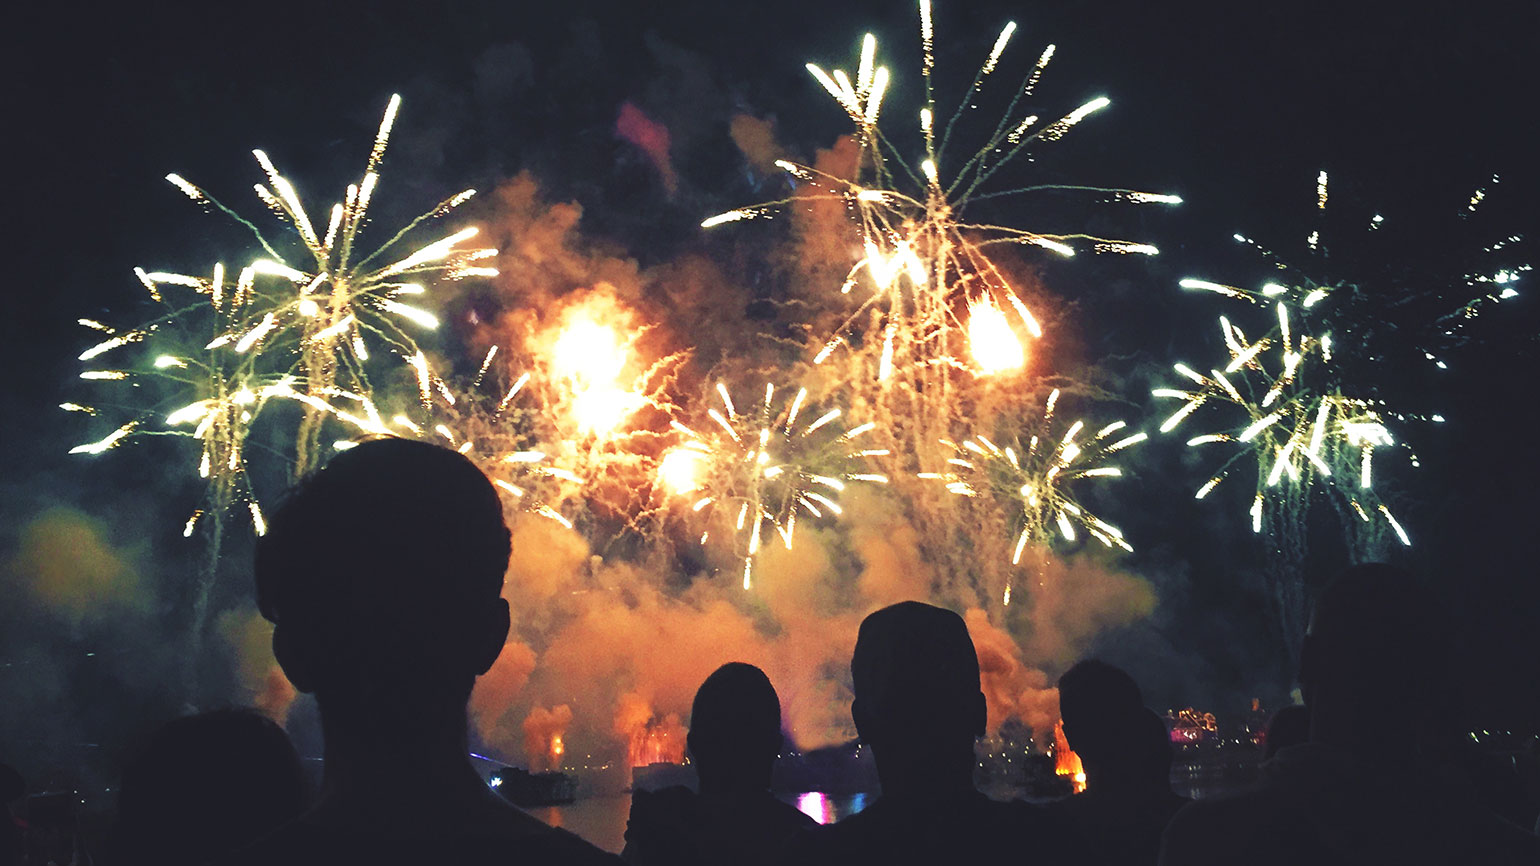 A fireworks display on Independence Day